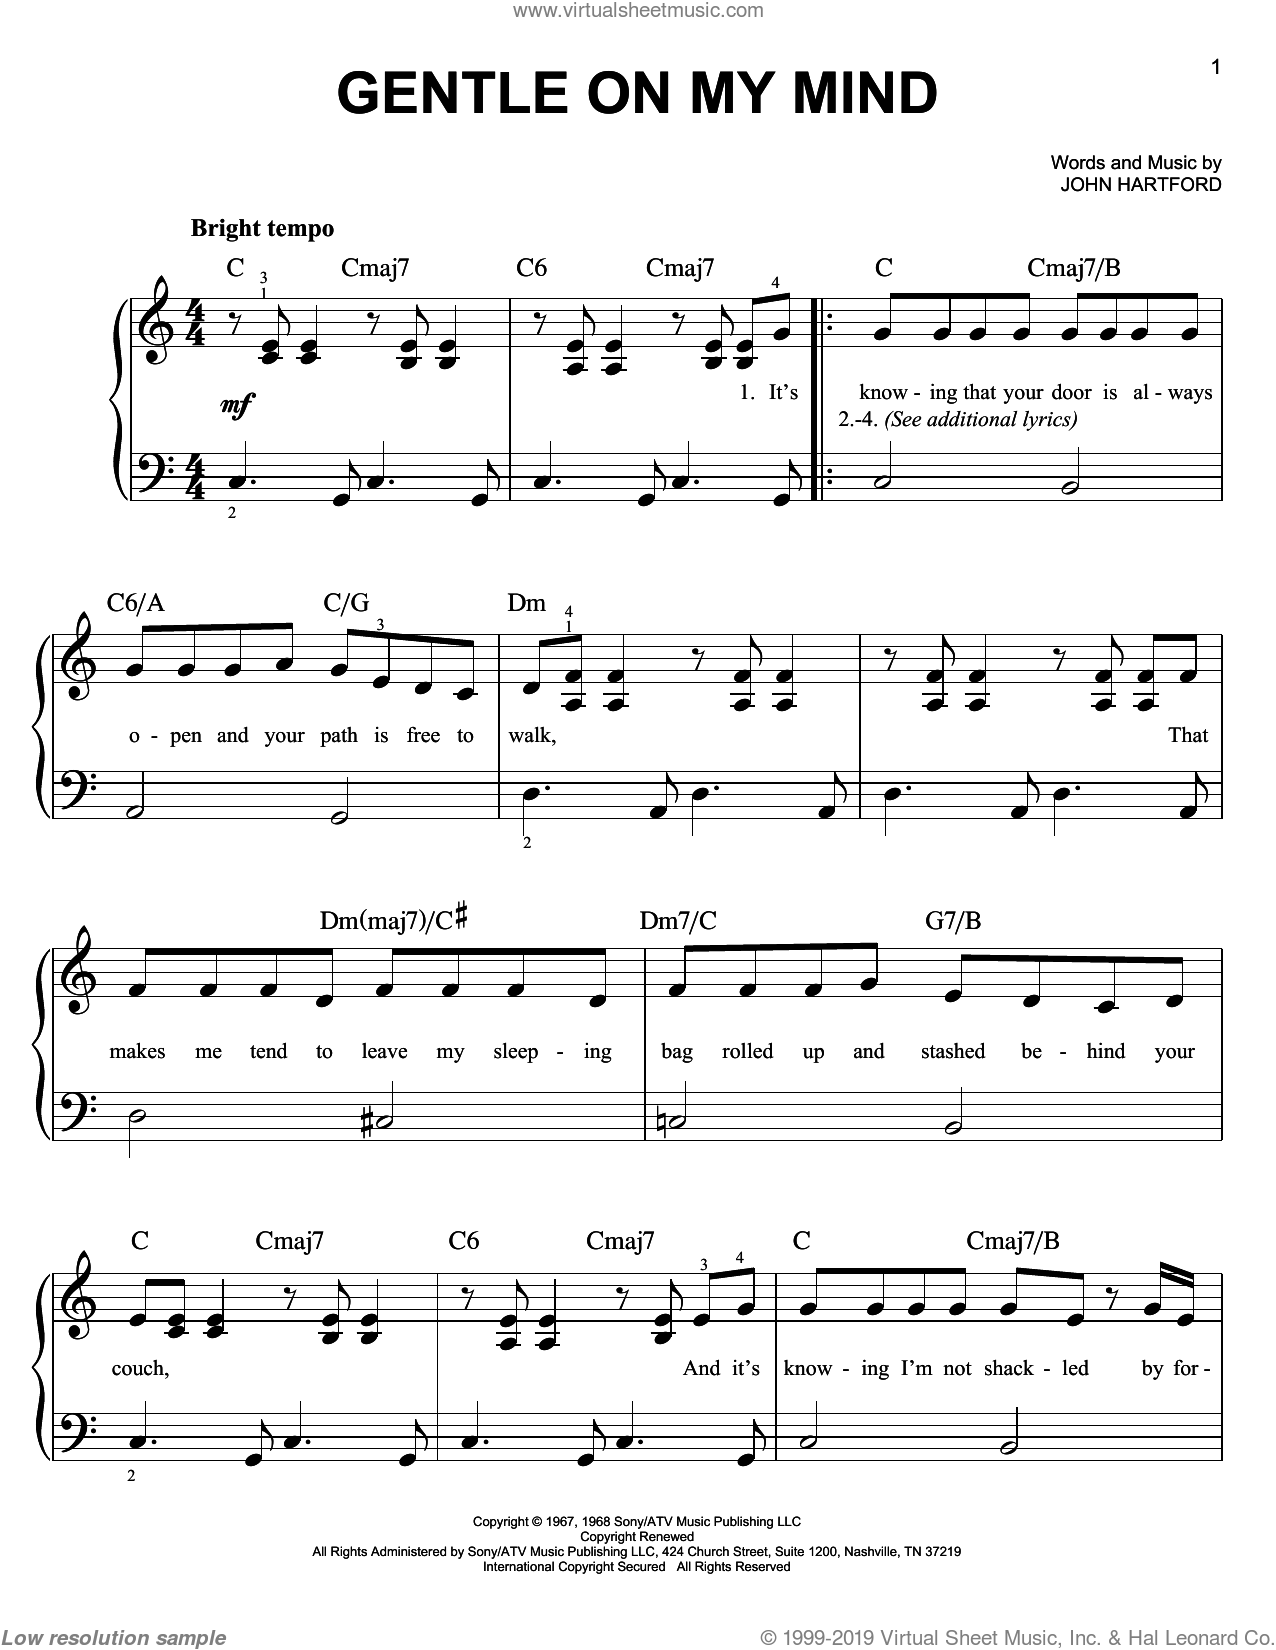 Gentle On My Mind sheet music for piano solo by John Hartford